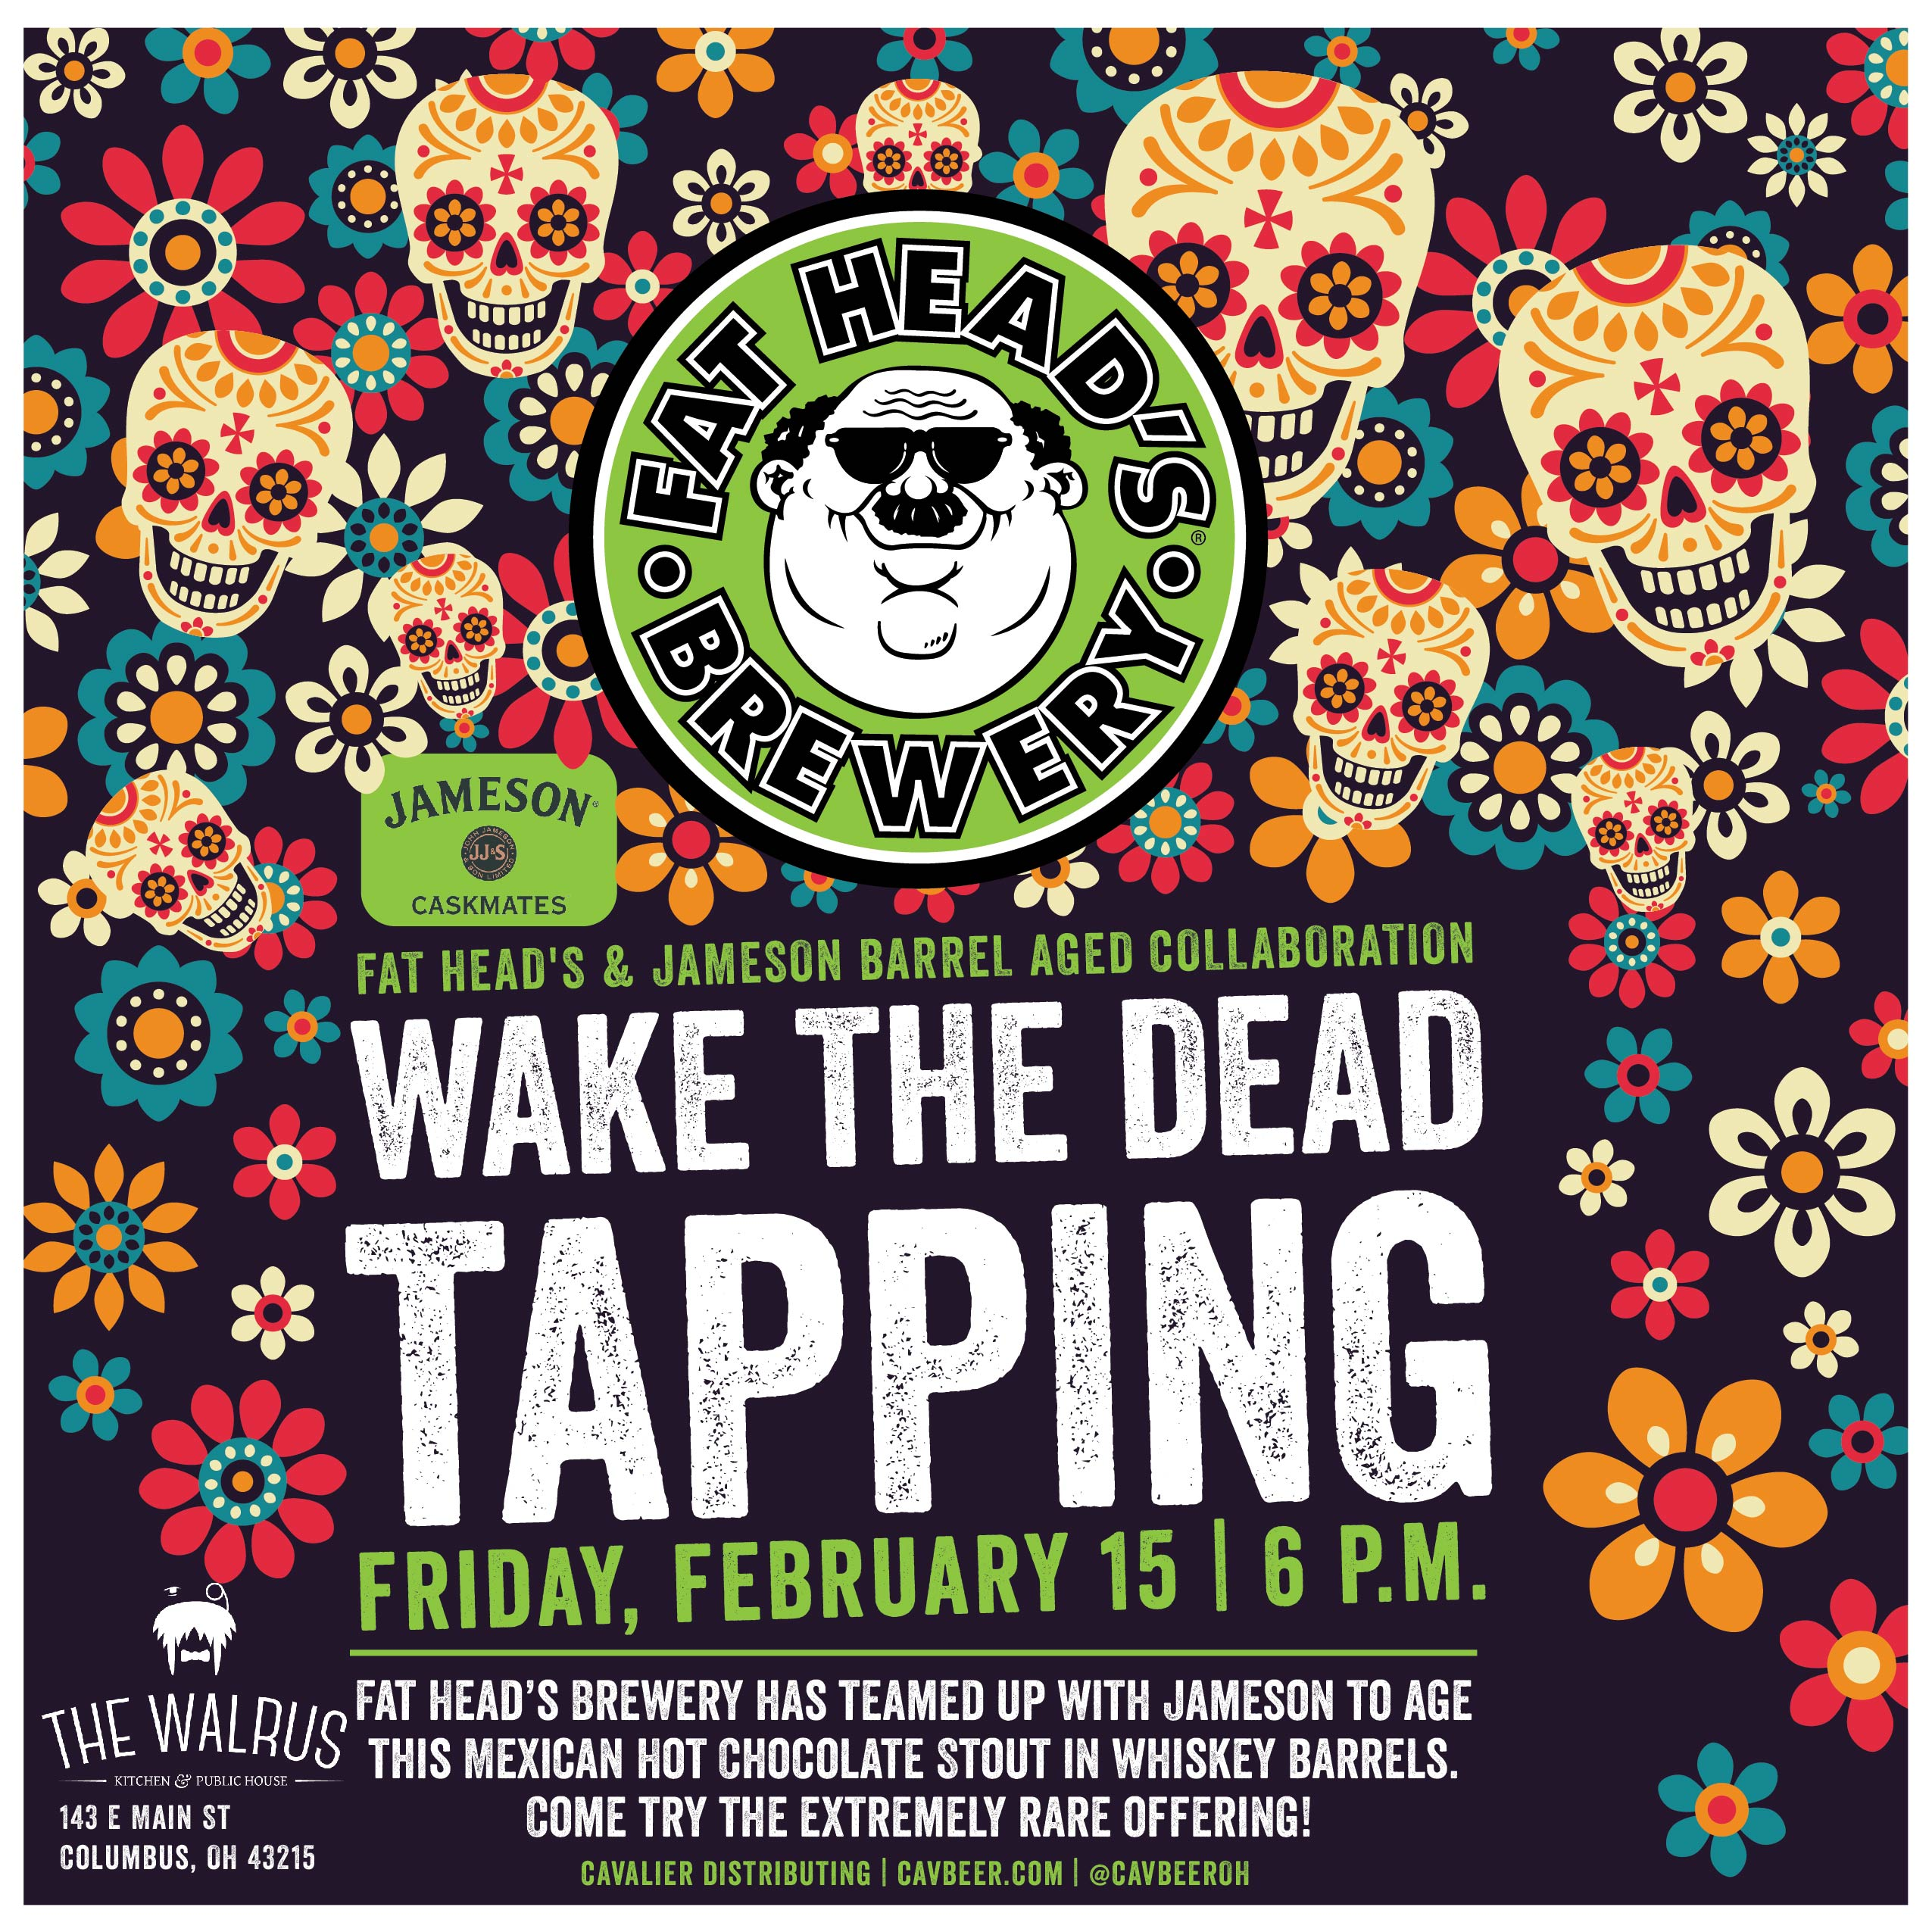 Wake the Dead Tapping @ The Walrus